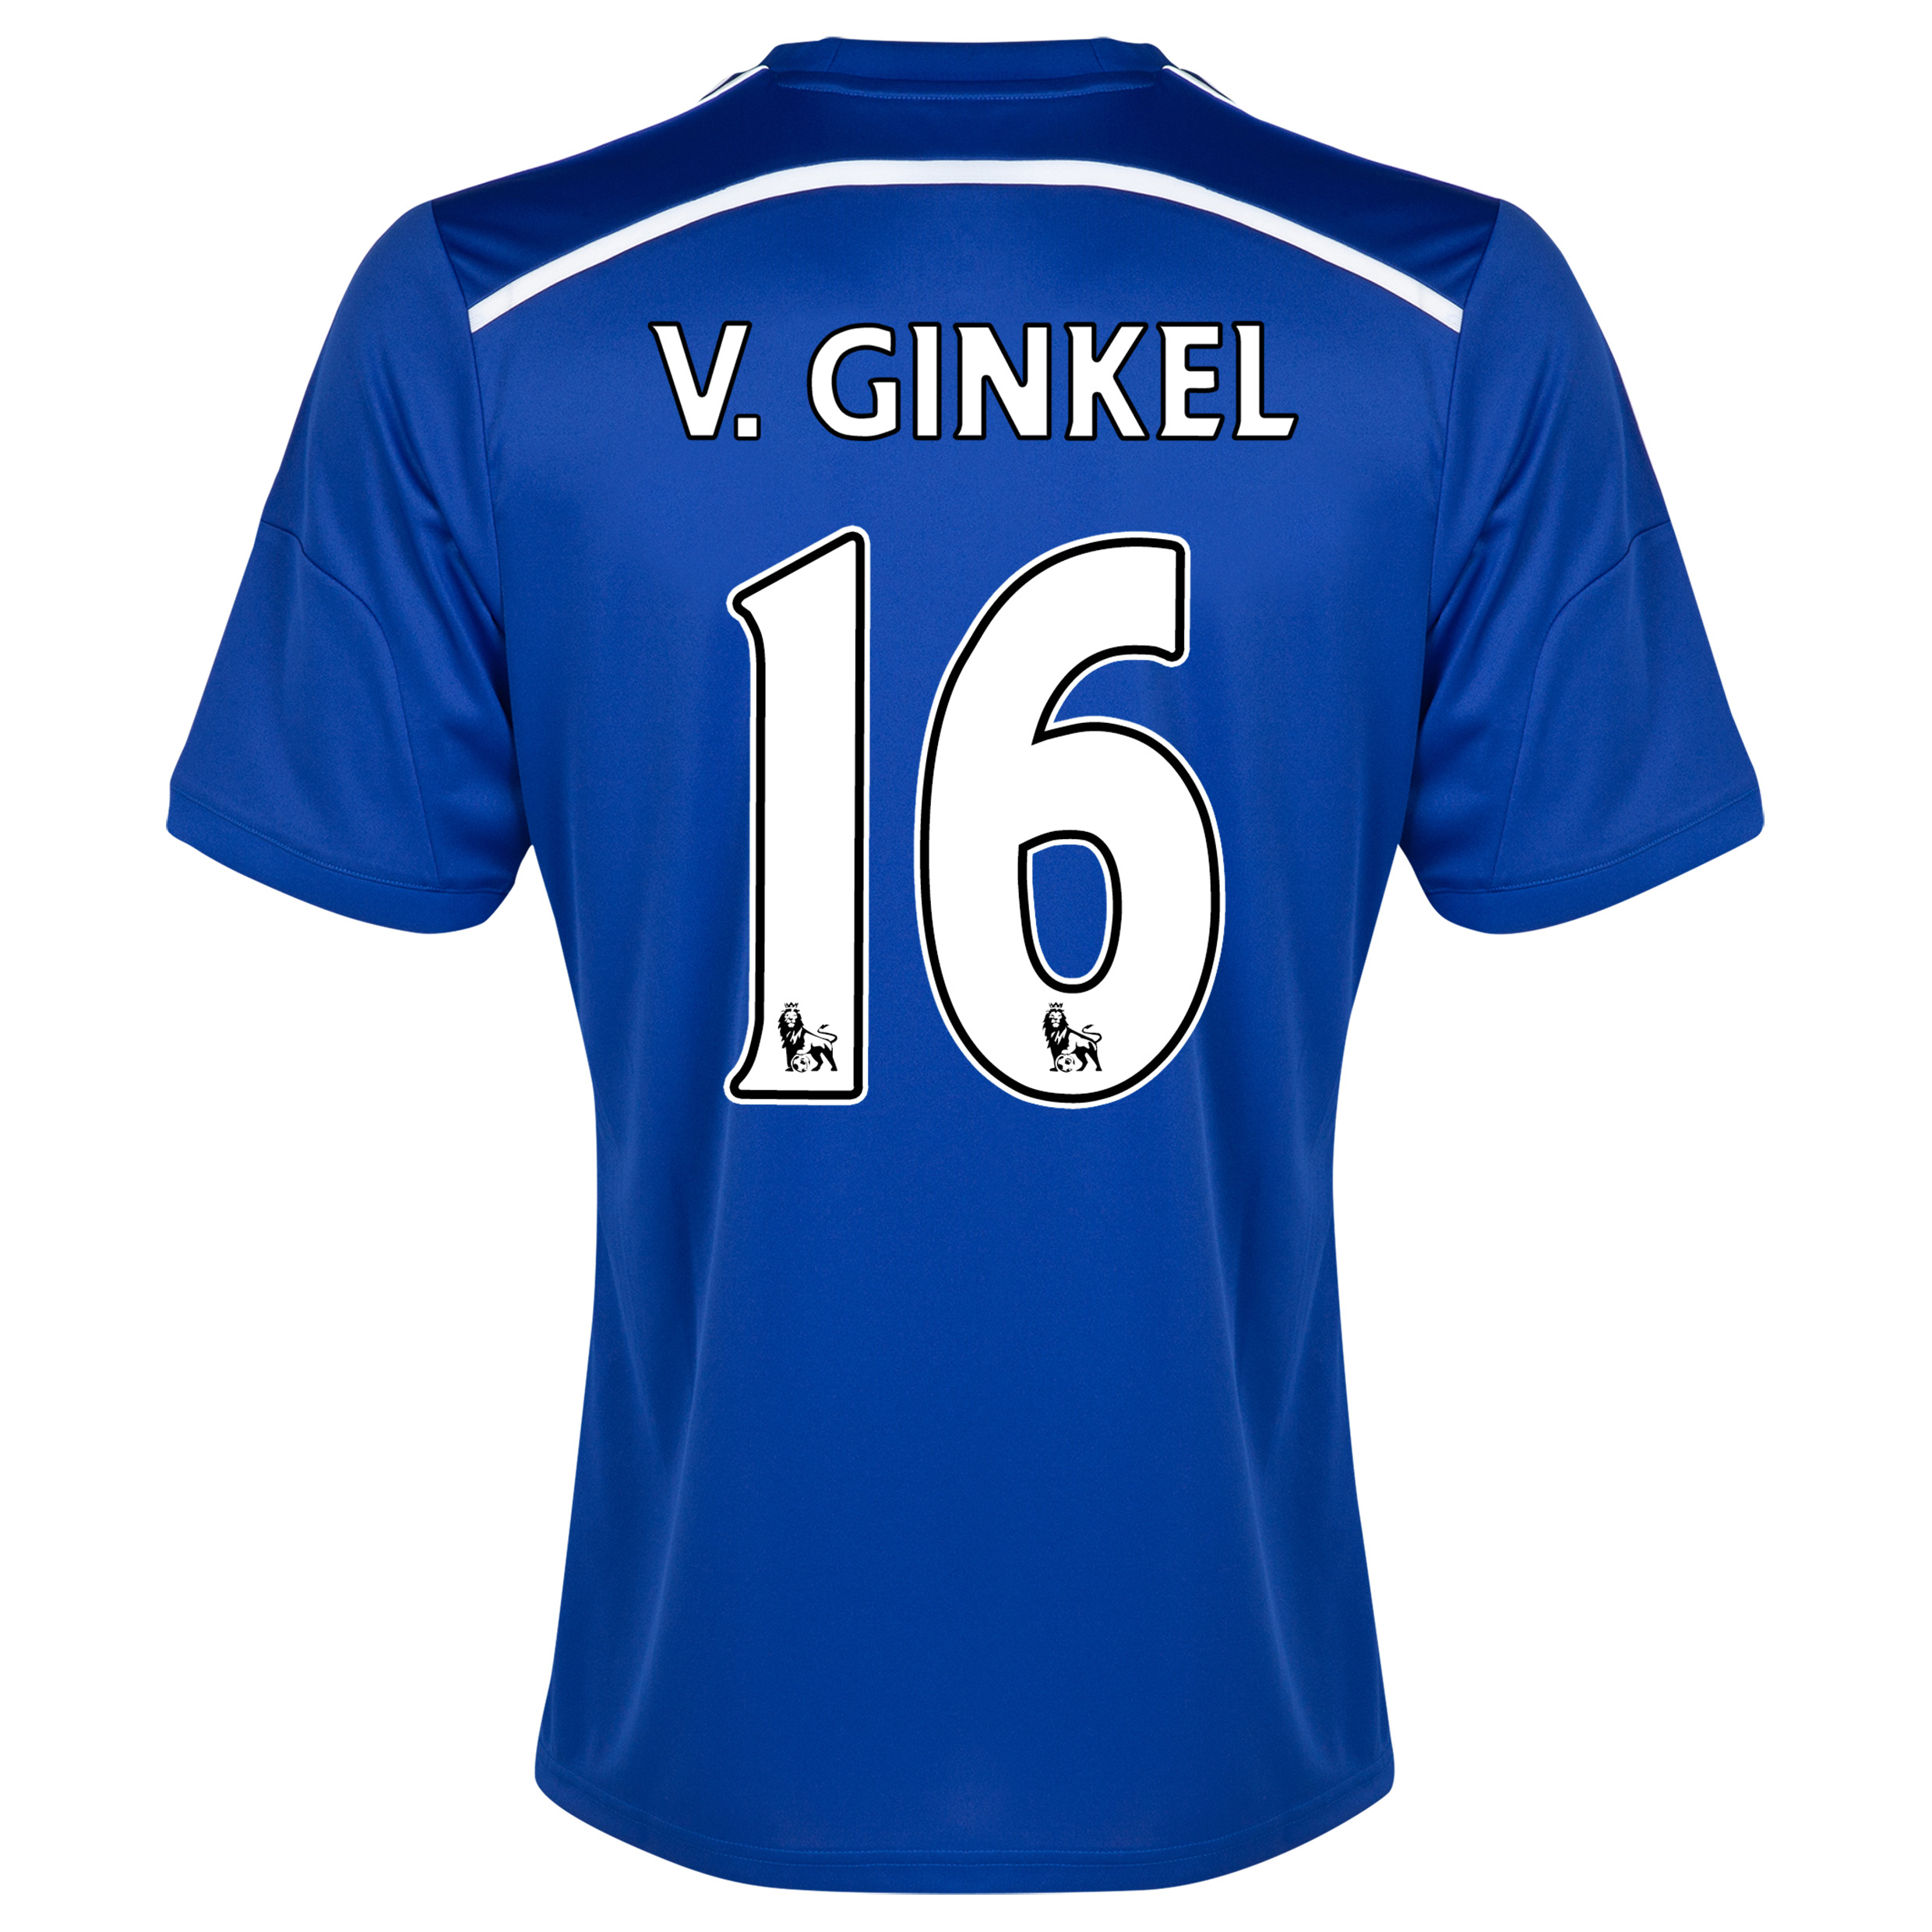 Chelsea Home Shirt 2014/15 Blue with v.Ginkel 16 printing